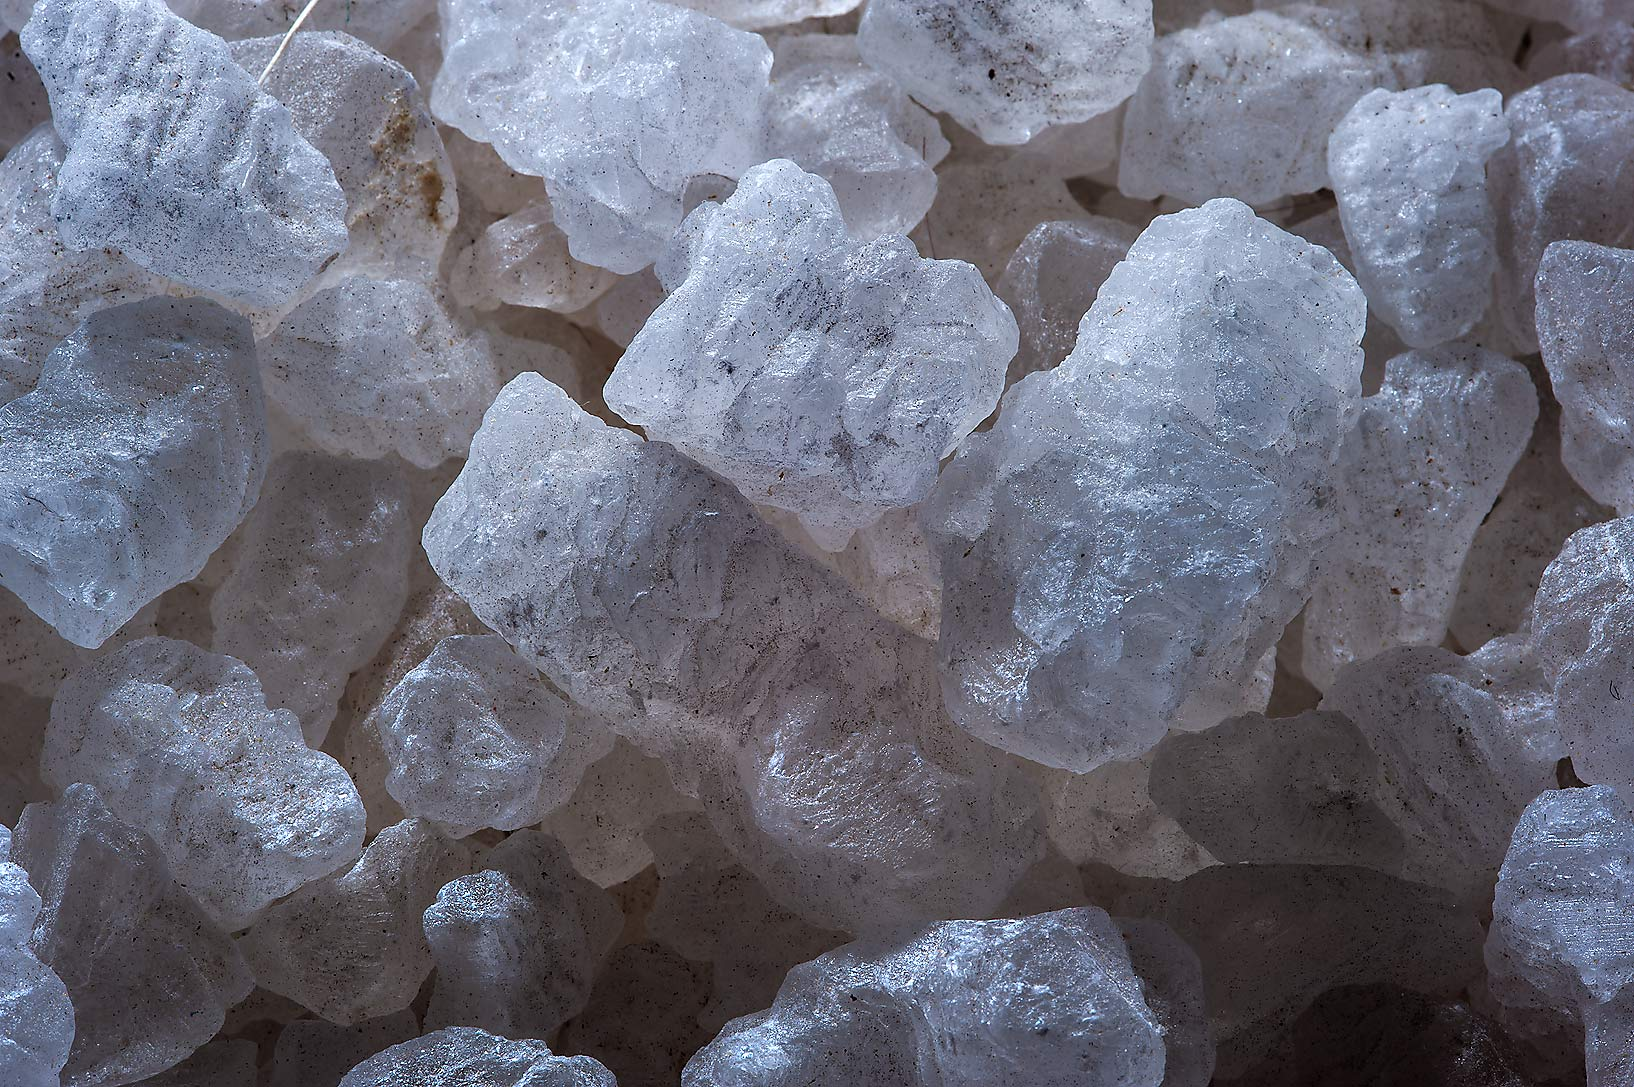 Salt crystals for sale in spice section of Souq Waqif (Old Market). Doha, Qatar